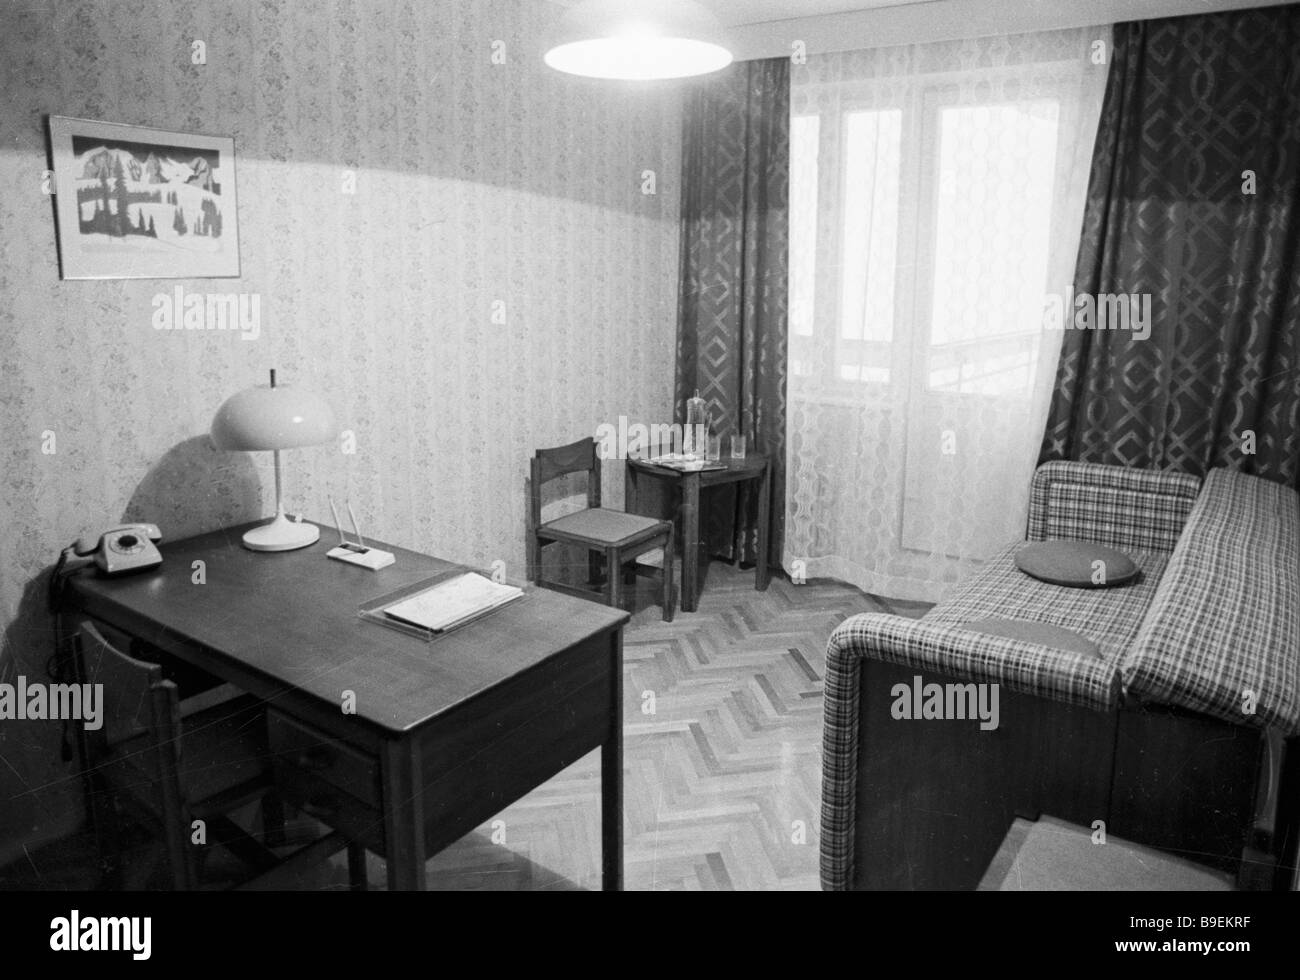 Olympic village room occupied by sportsmen - Stock Image